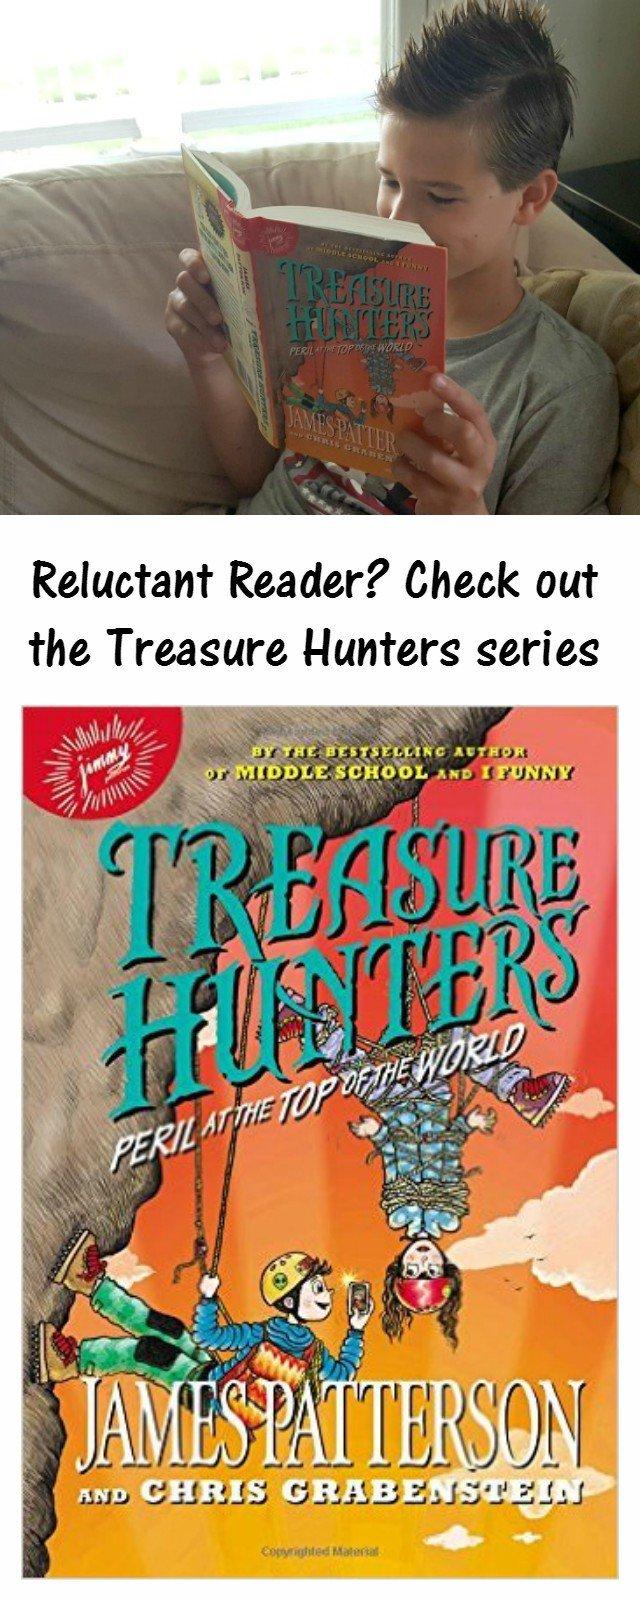 Have a reluctant reader? Check out the Treasure Hunters by James Patterson is a great series to engage your child. Aimed at grades 3-7, there is plenty of adventure and graphics on almost every page. See why my son and daughter both loved Treasure Hunters: Peril at the Top of the World.